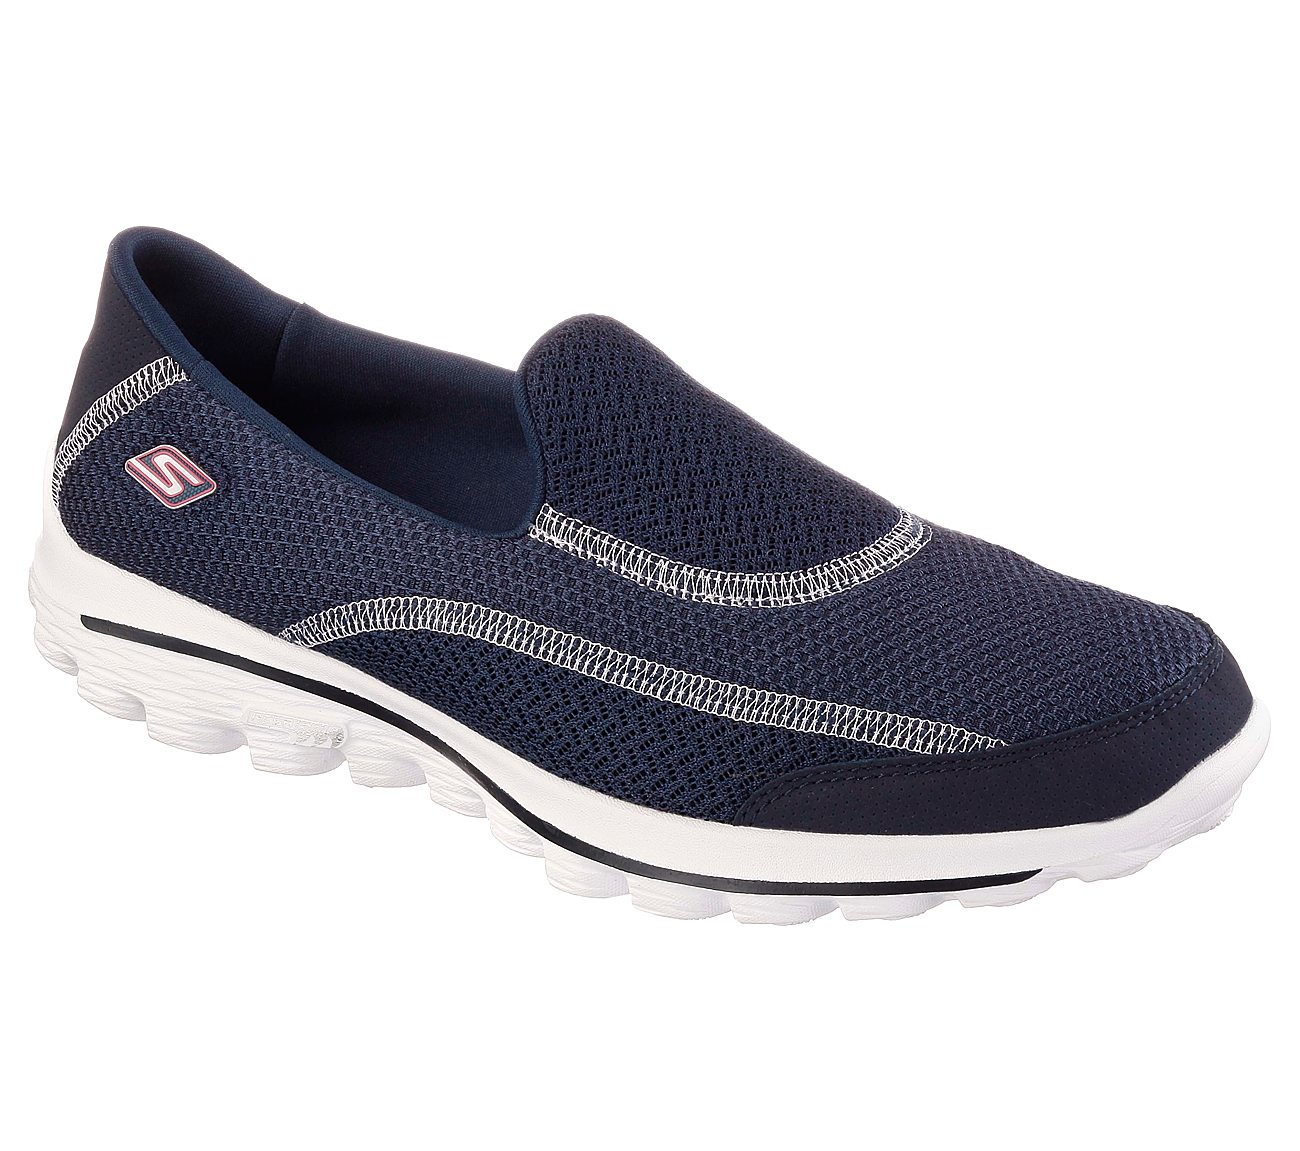 Buy Skechers Skechers Gowalk 2 Golf Putt Skechers